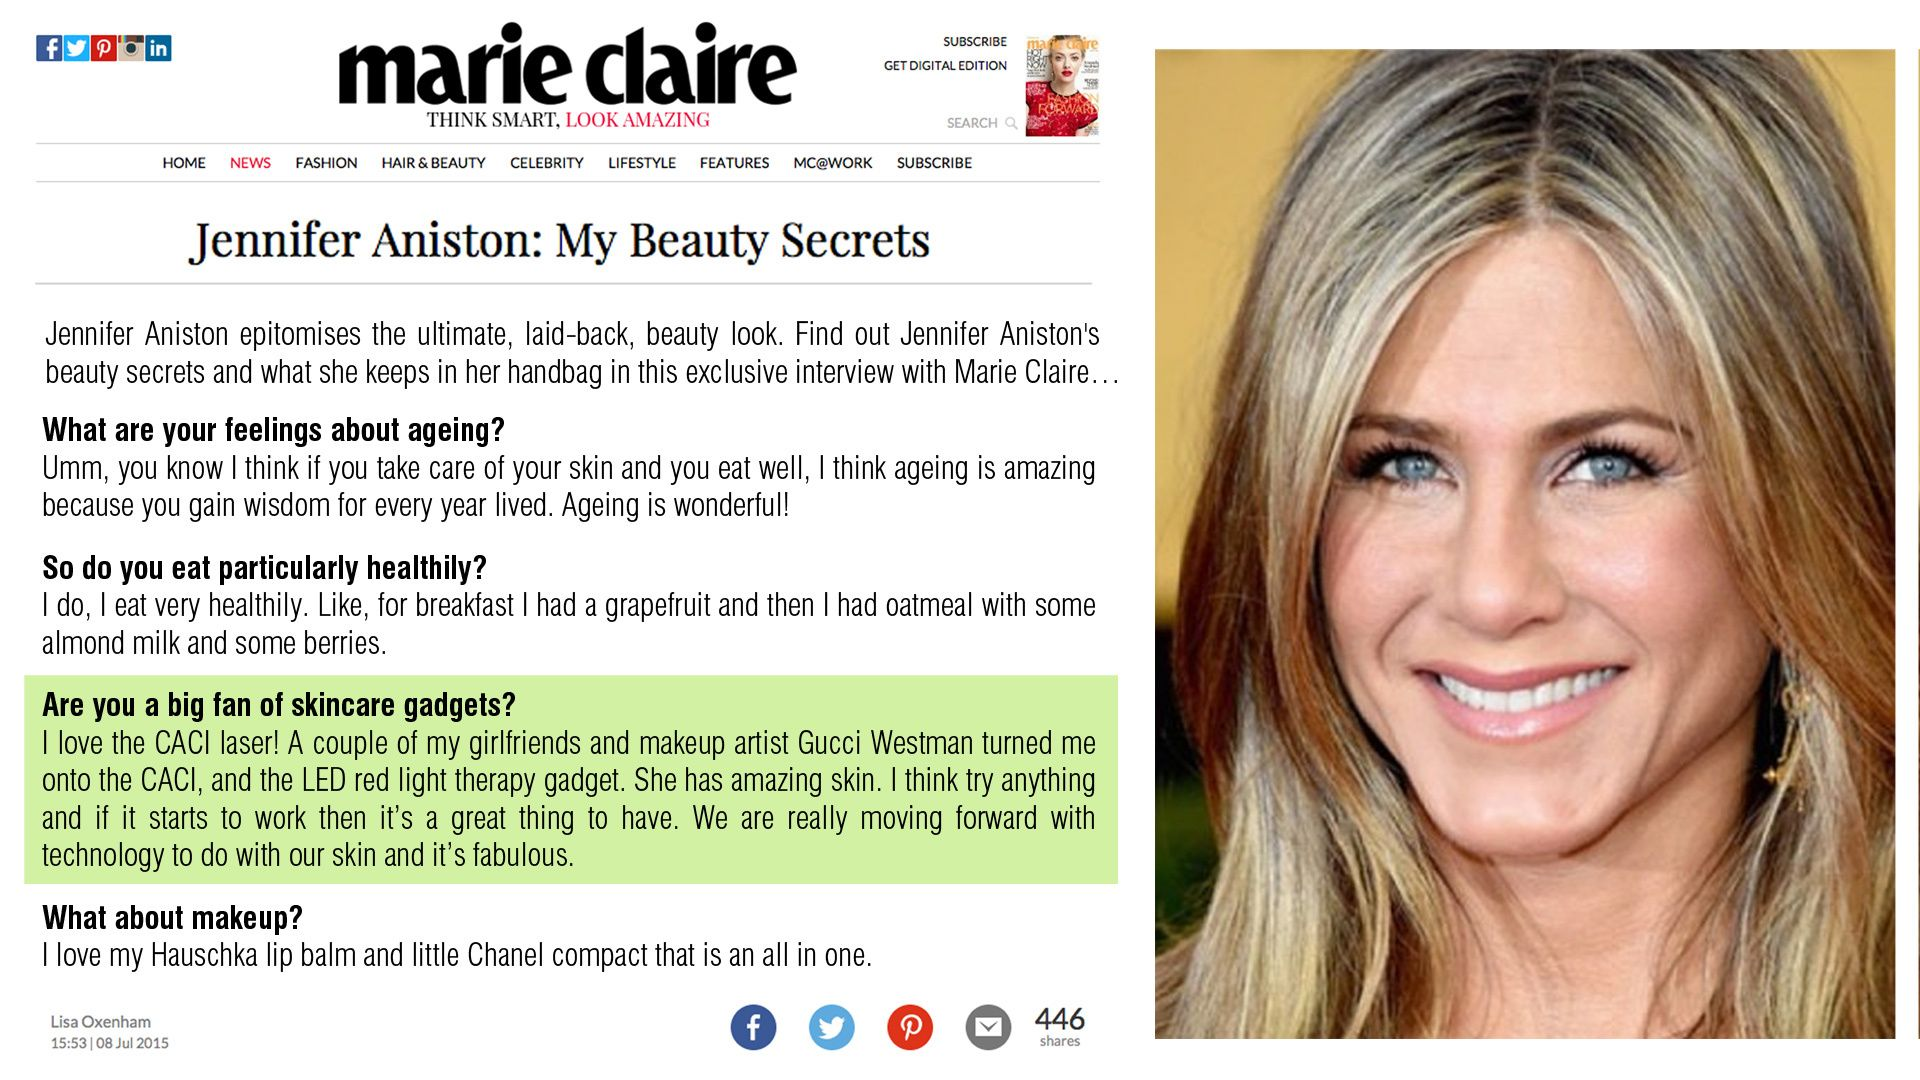 Celebrities love CACI nonsurgical face treatments Come and try